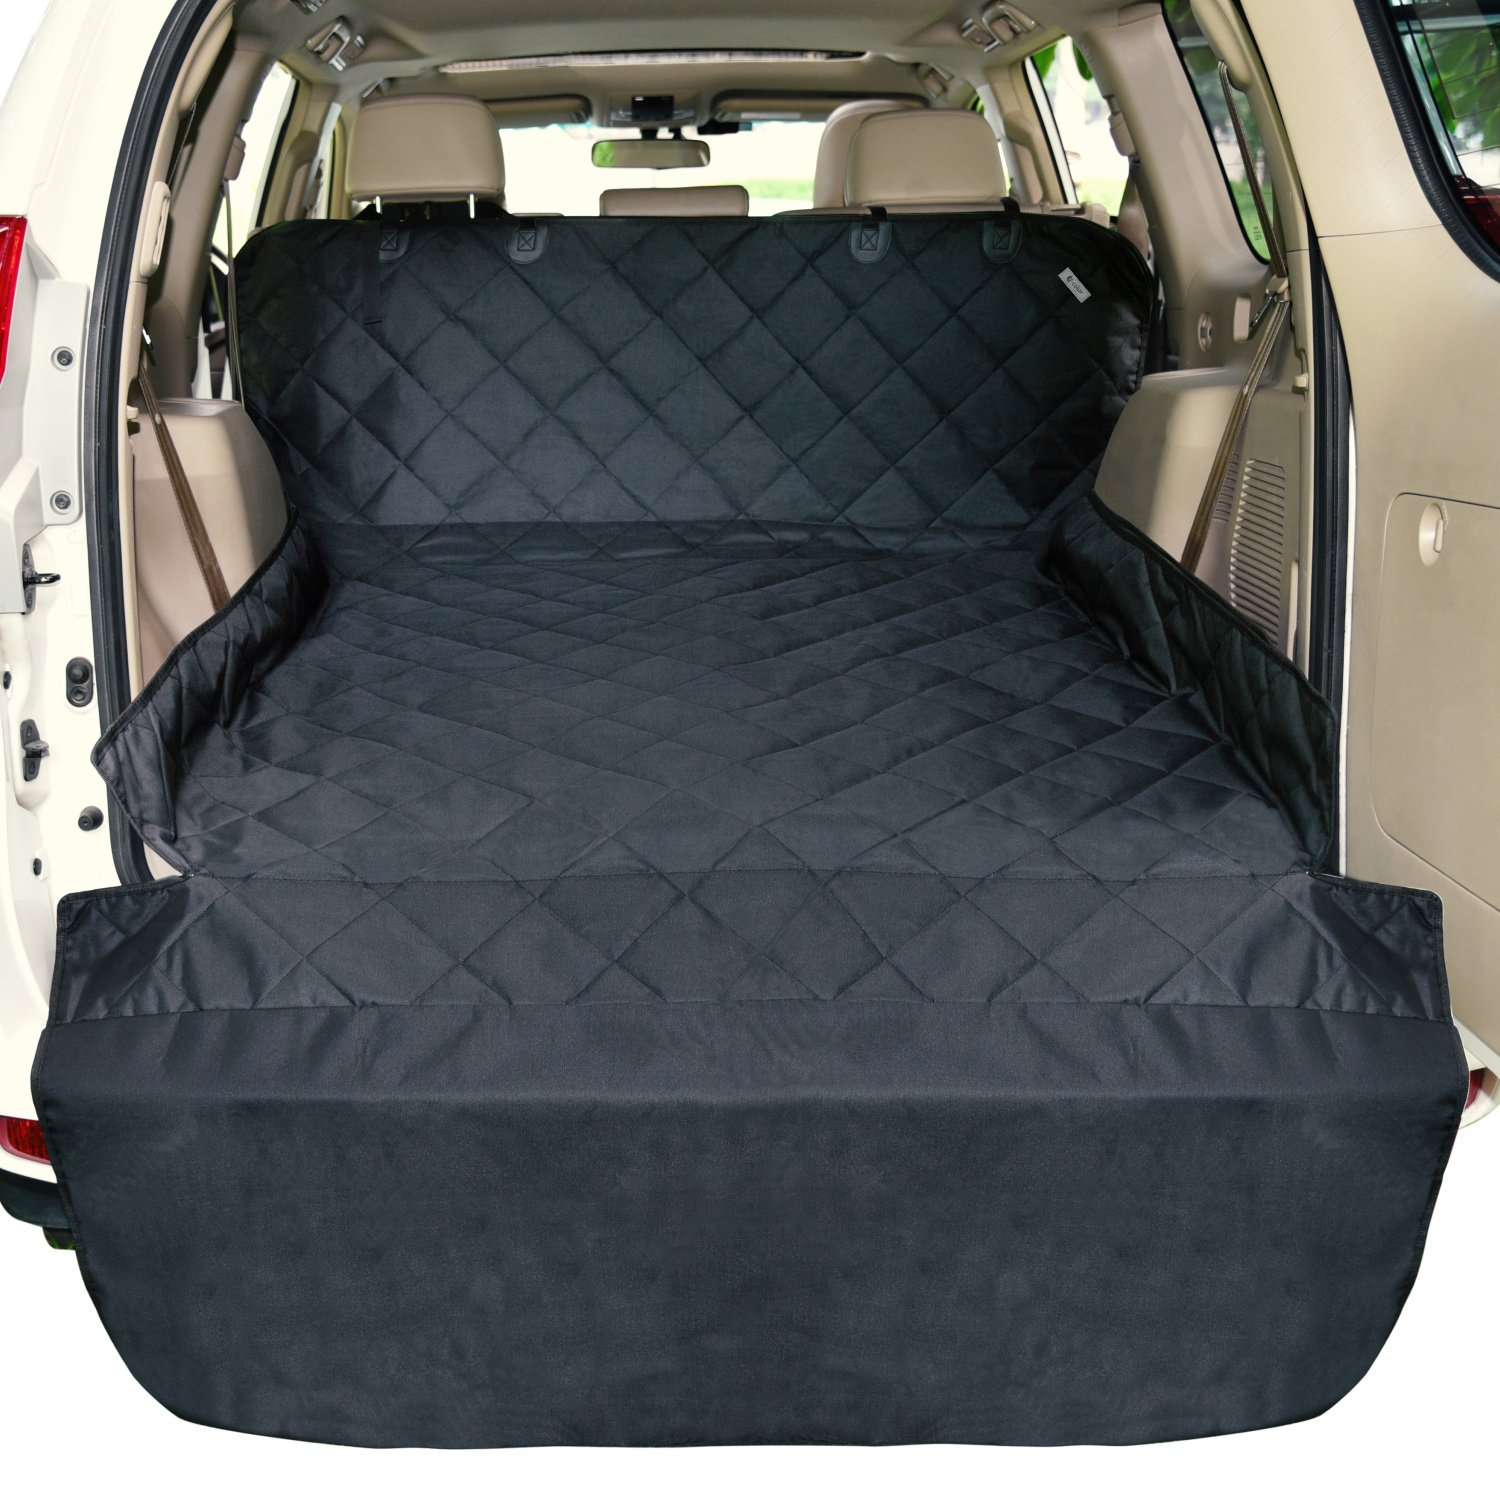 3. G-color SUV Cargo Liner for Dogs